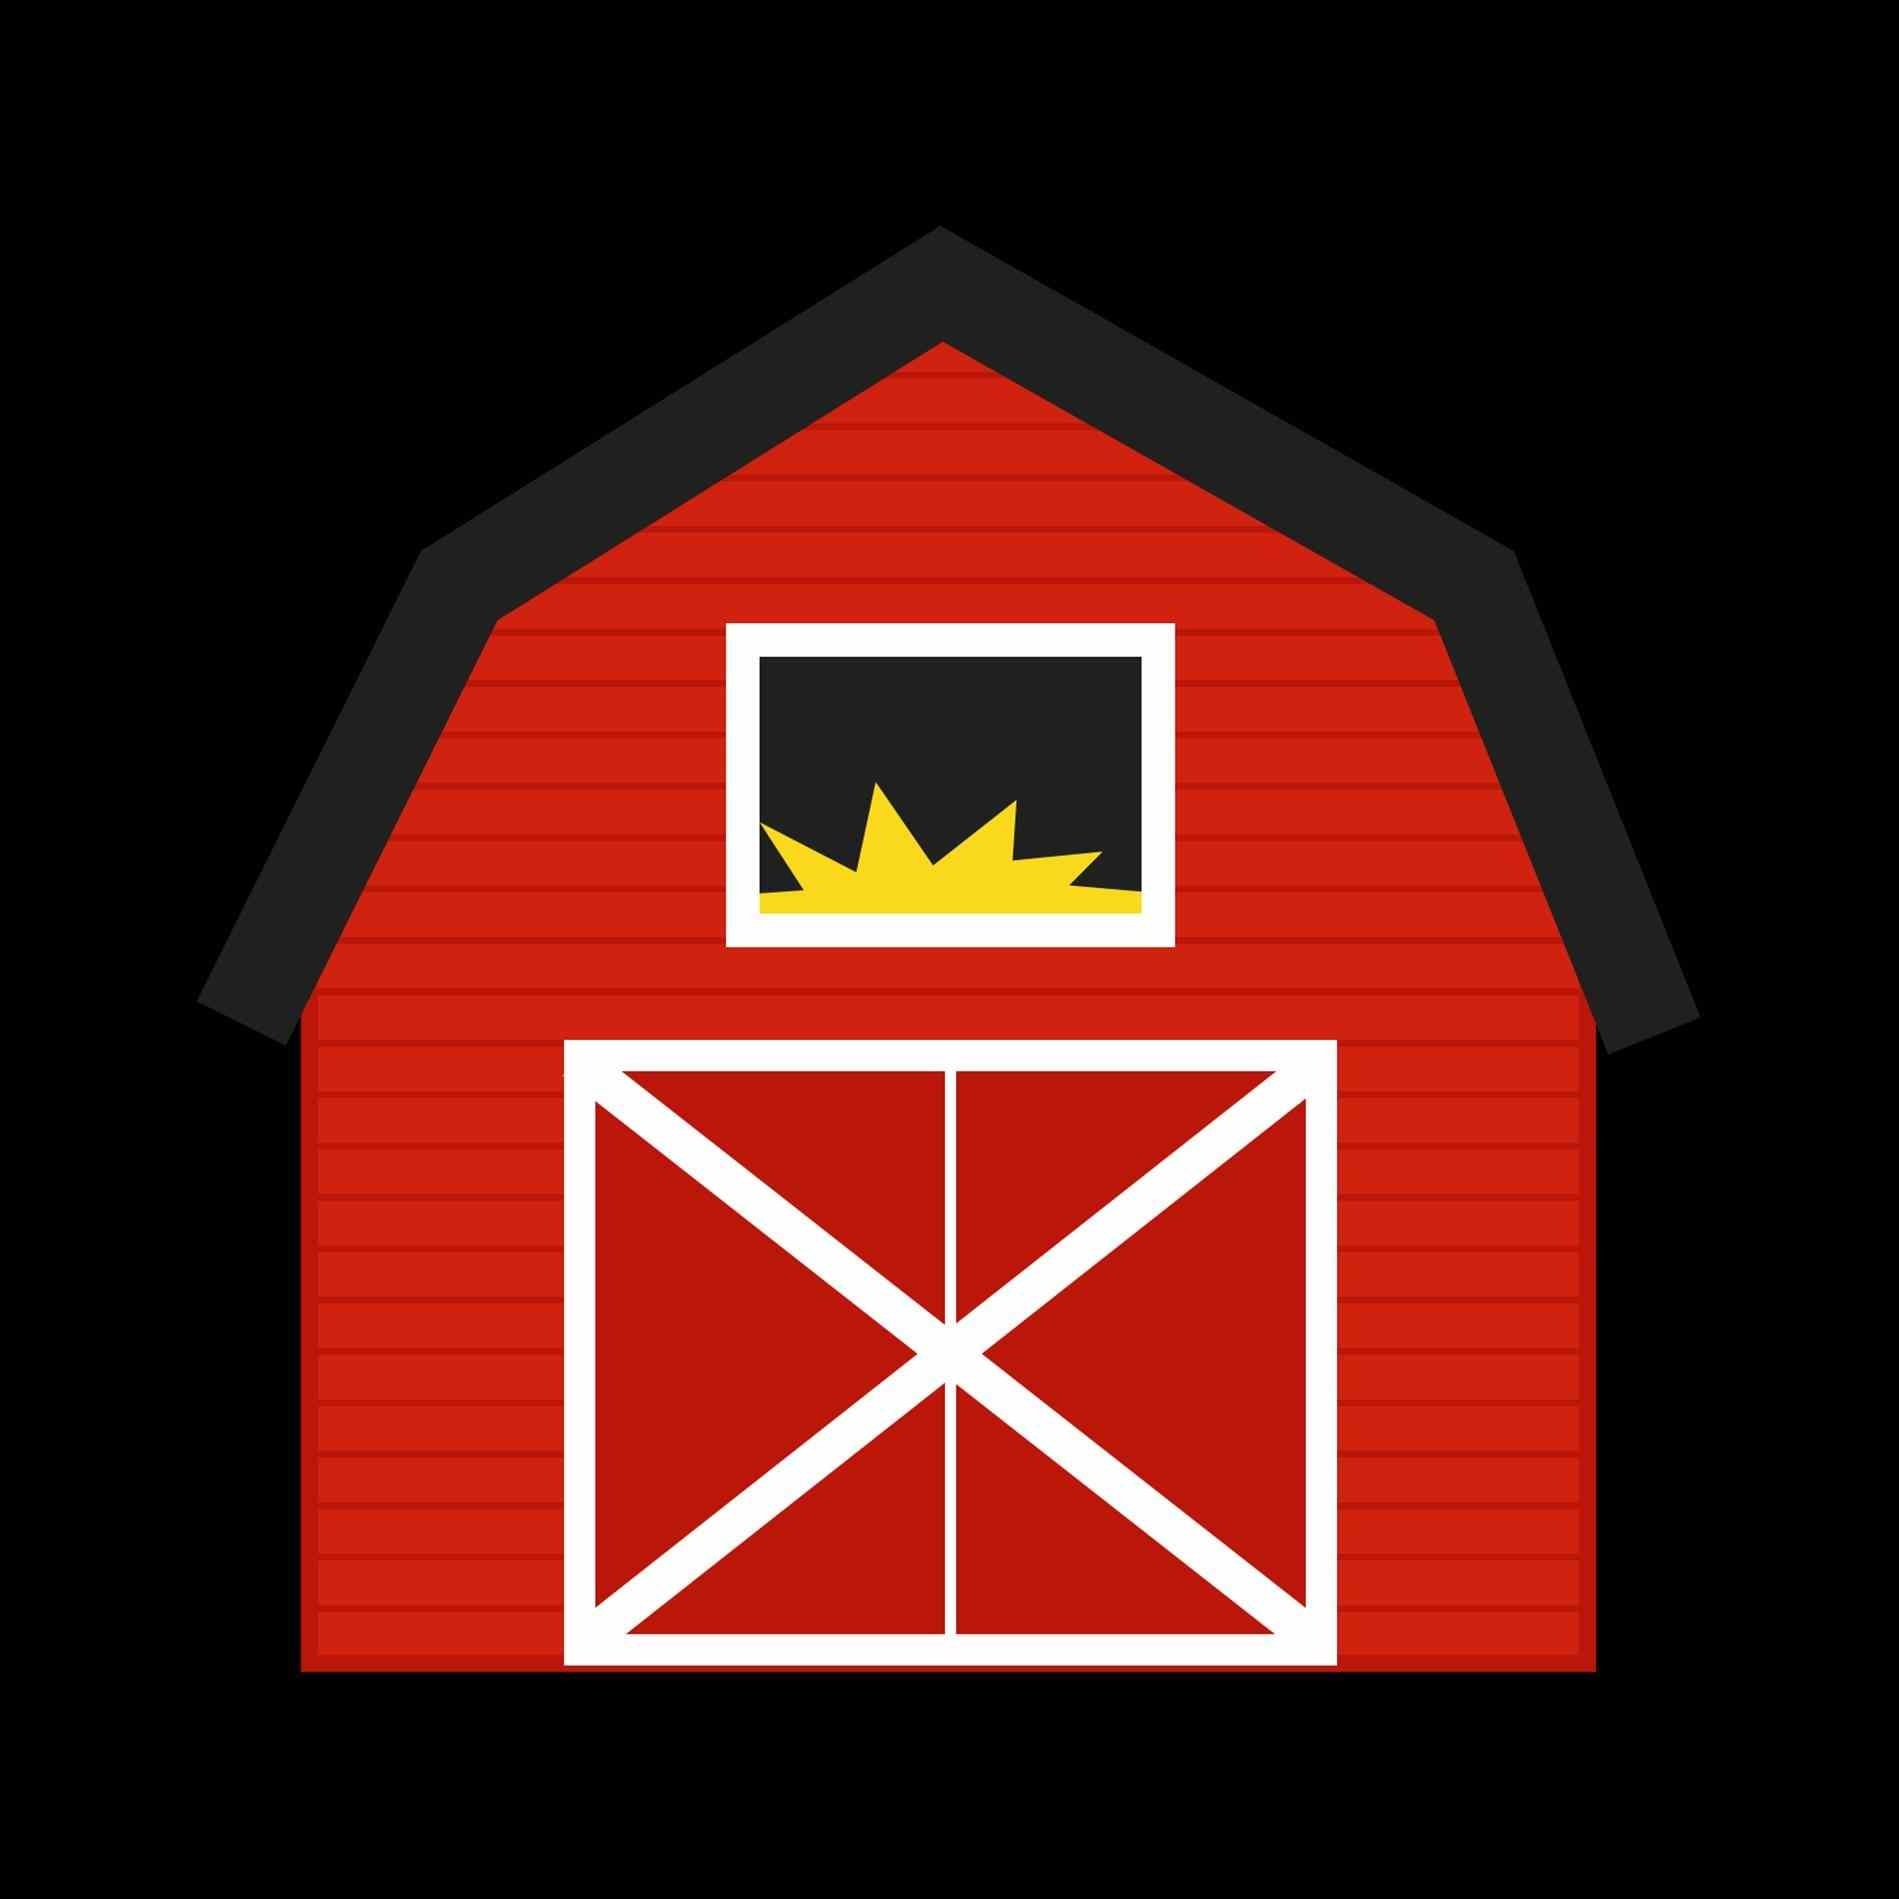 Barn clipart horse shelter. Sparkassess com page info